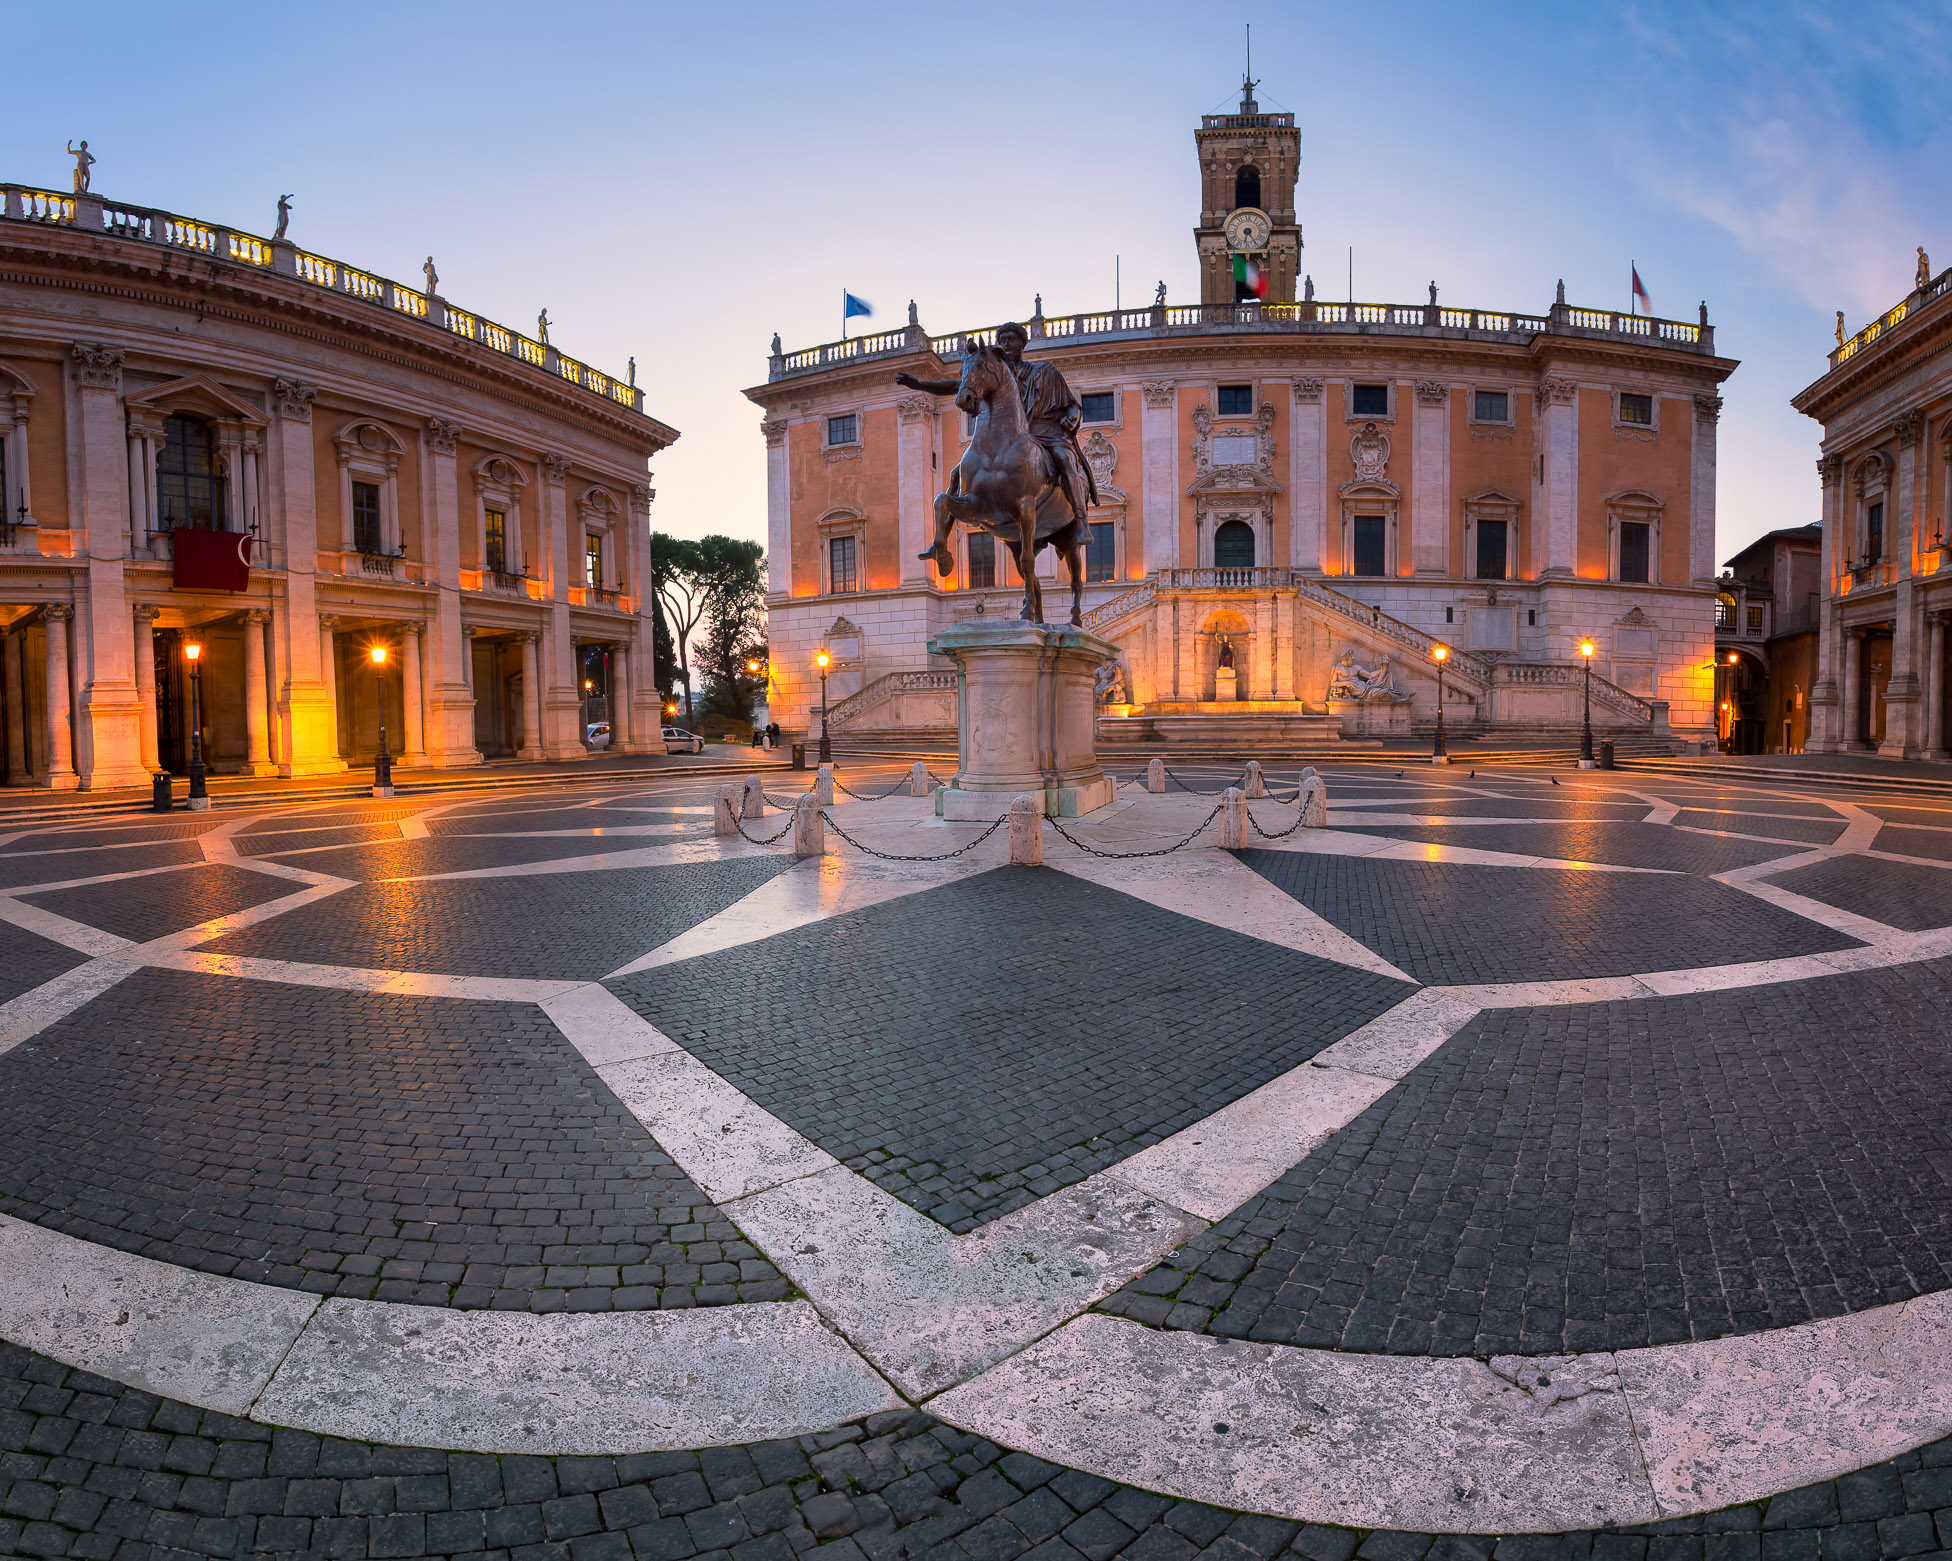 Piazza del Campidoglio and Emperor Marcus Aurelius Statue in the Morning, Rome, Italy